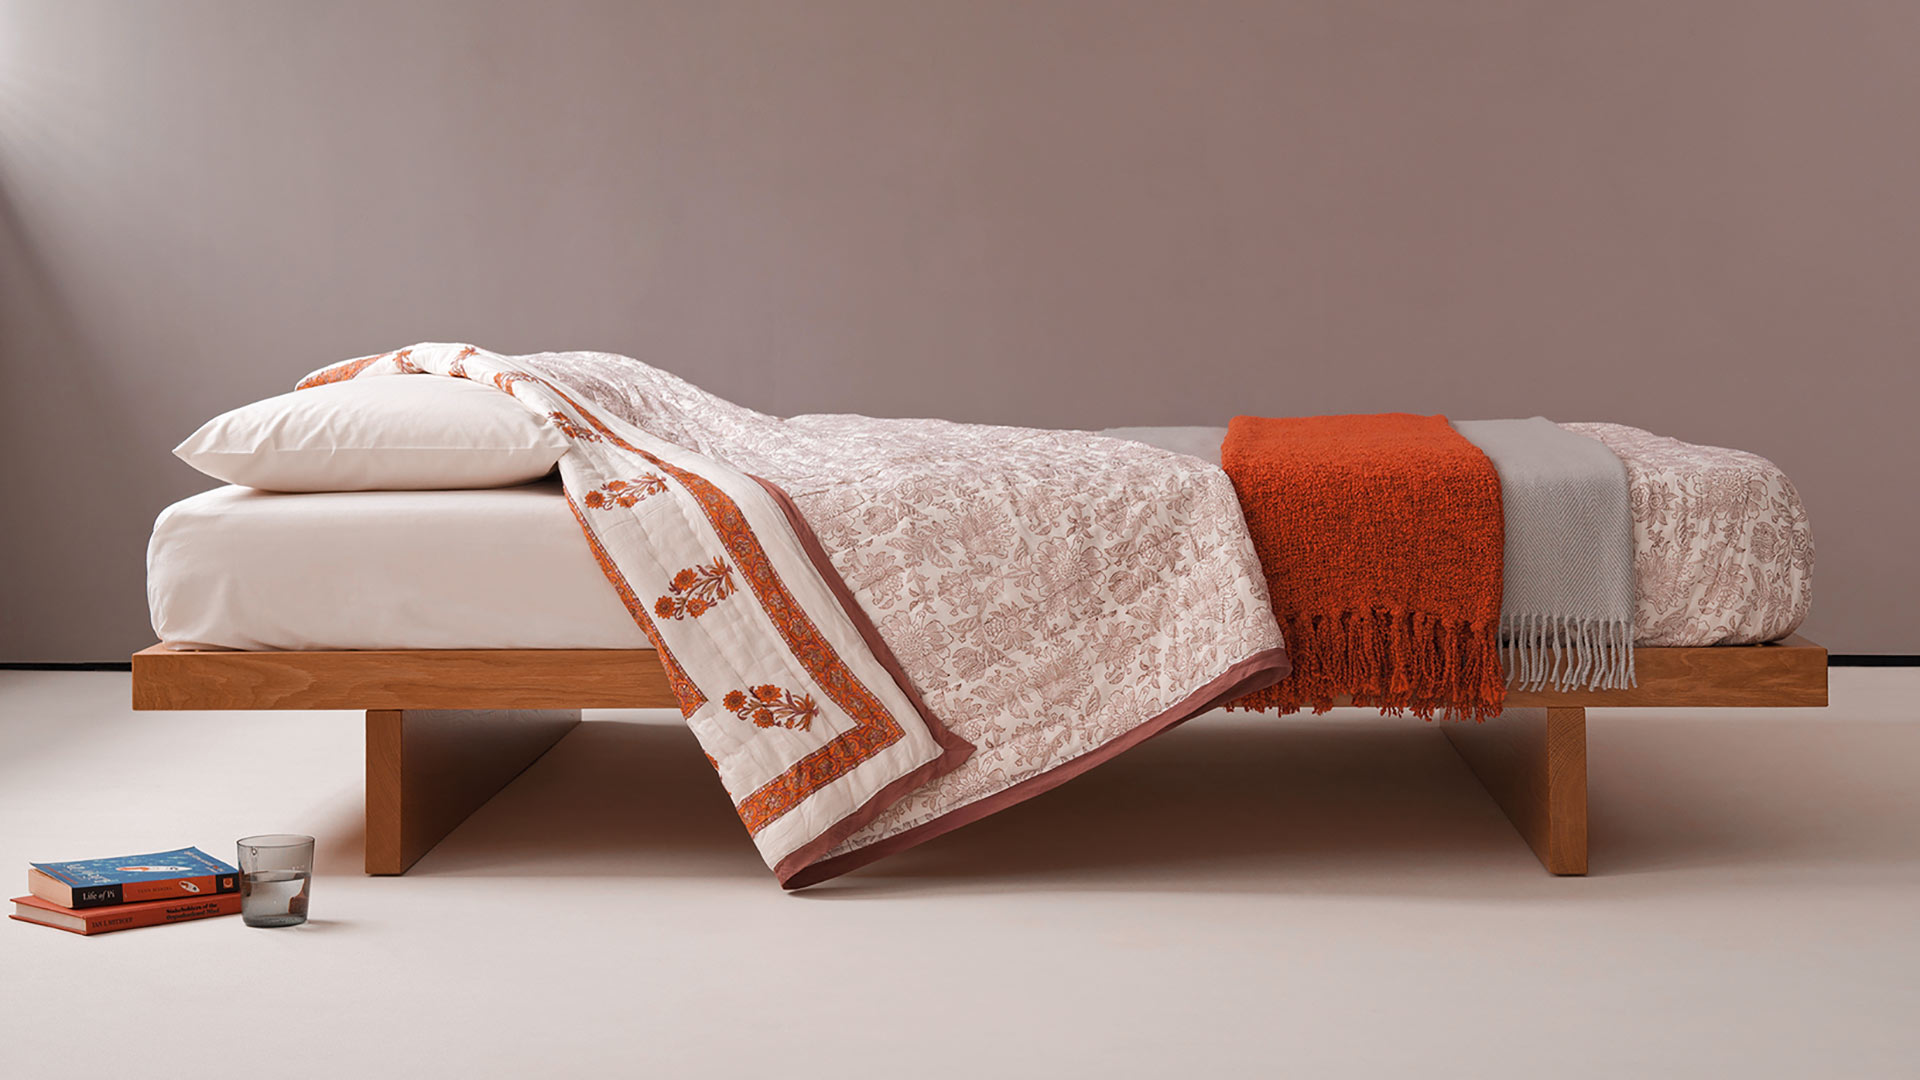 Hand-made Kyoto Bed made to order in a range of timbers and sizes here in Cherry.